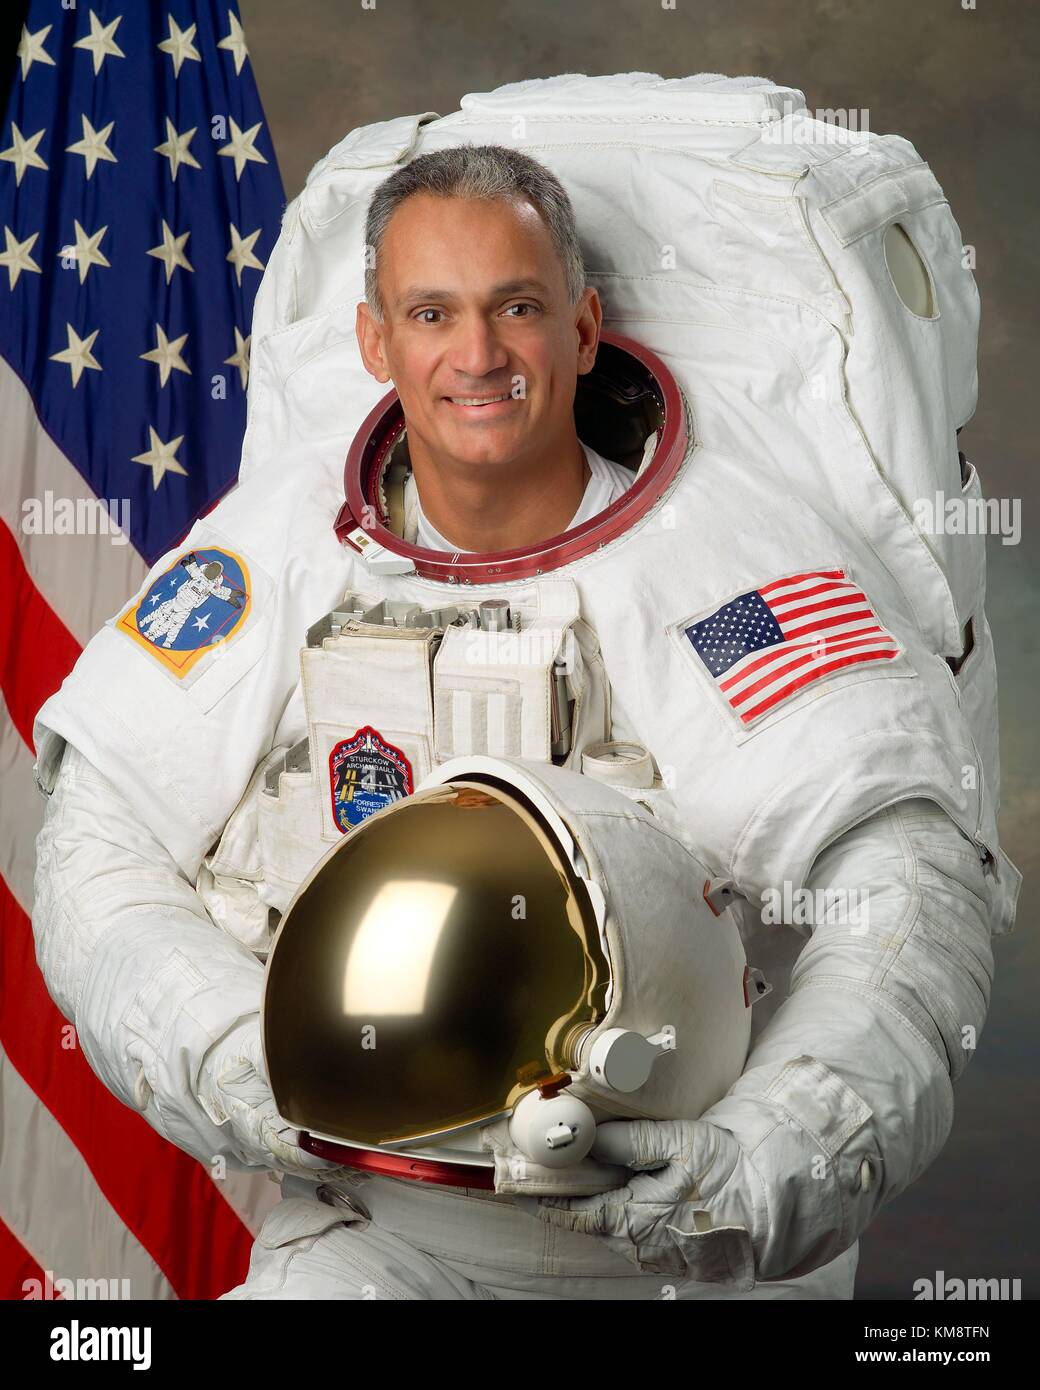 Official portrait of NASA STS-117 and STS-128 mission astronaut John ÒDannyÓ Olivas in a spacesuit at - Stock Image